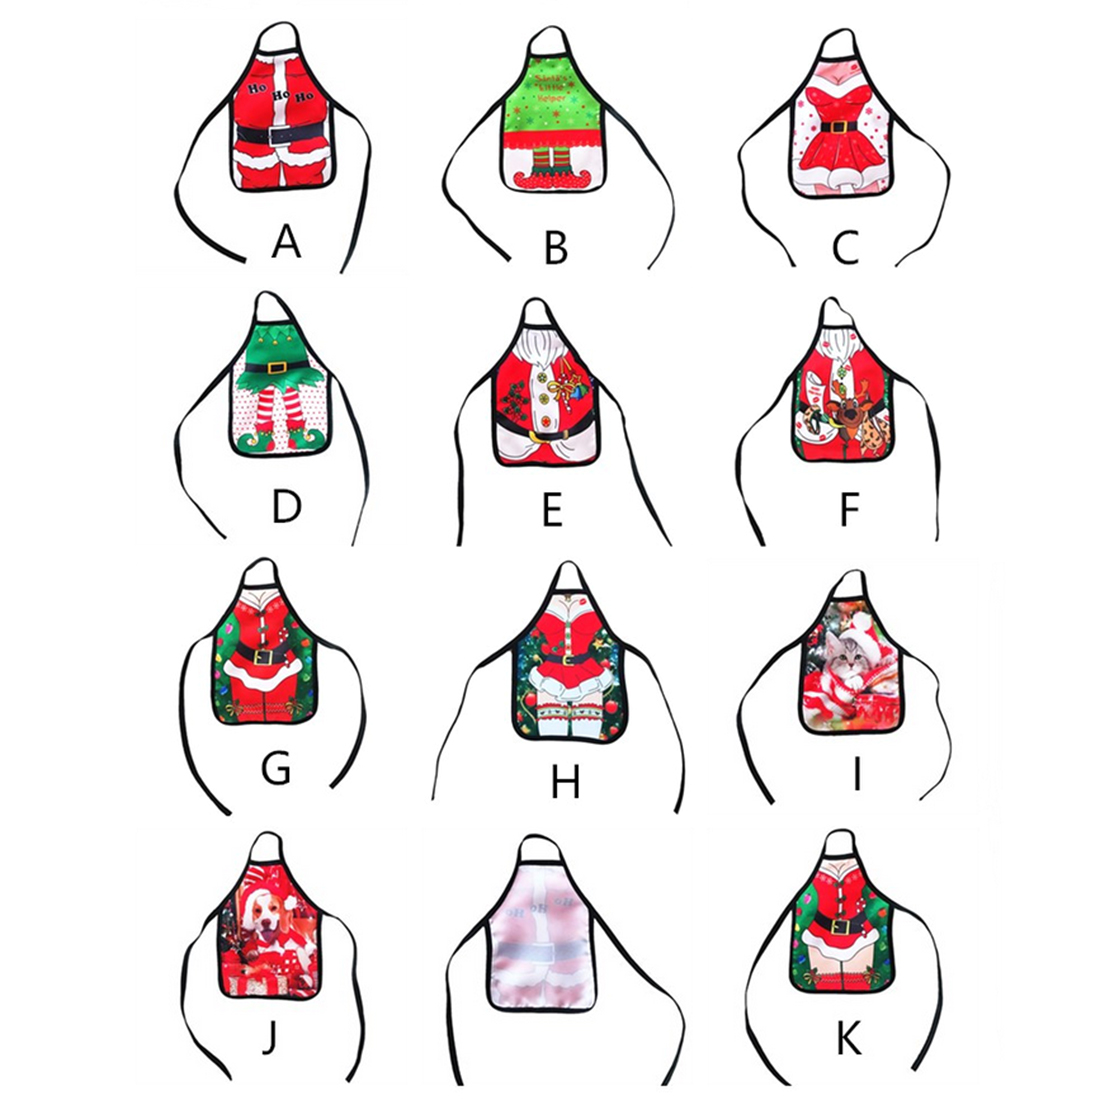 1Pcs Mini Apron Shape Christmas Wine Bottle Cover Wine Gift Bag Xmas Dinner Table Party Decor(Random Delivery from 11 Patterns)